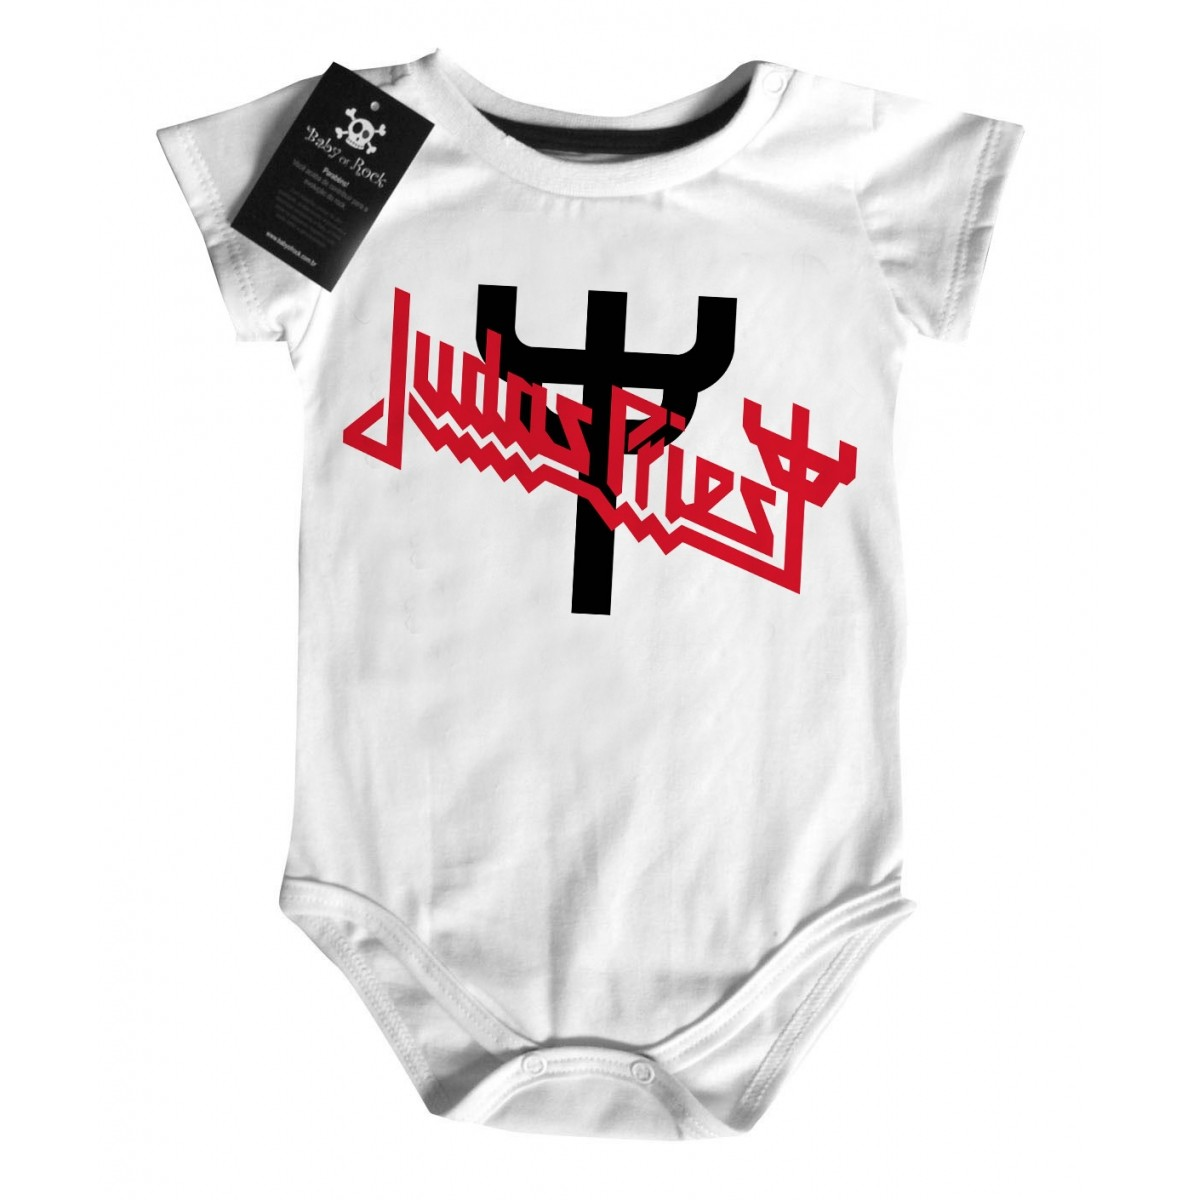 Body Rock Baby JUDAS PRIEST- White  - Baby Monster S/A